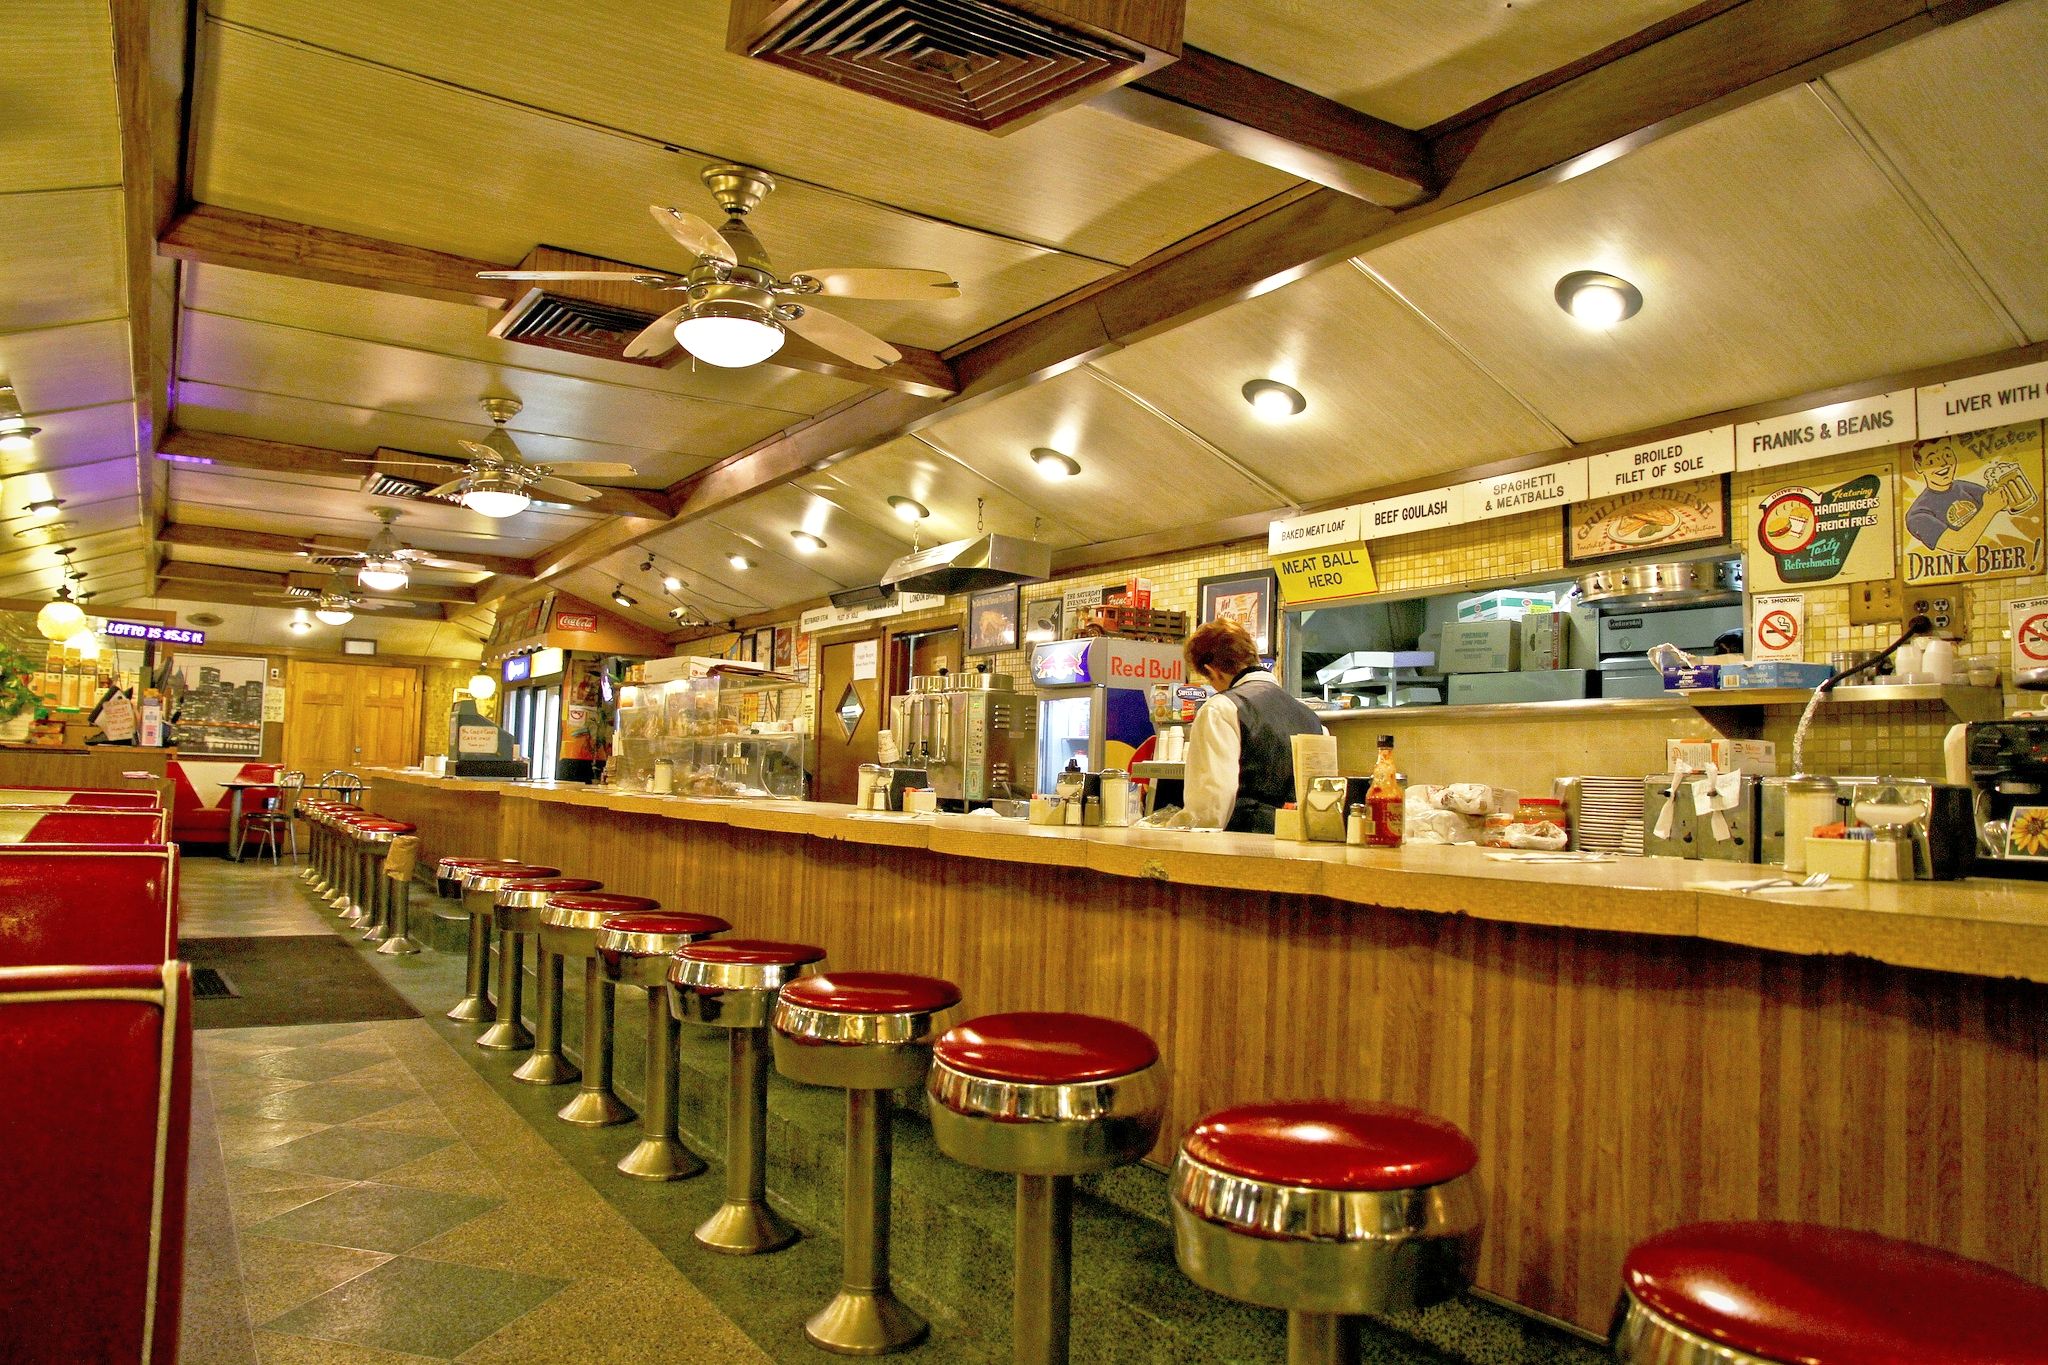 Chrome & neon accented eatery offering familiar diner fare & all-day breakfast in throwback digs at 5626 Maspeth Ave, Queens, NY | Open 24 hours | Phone (718) 894-1566